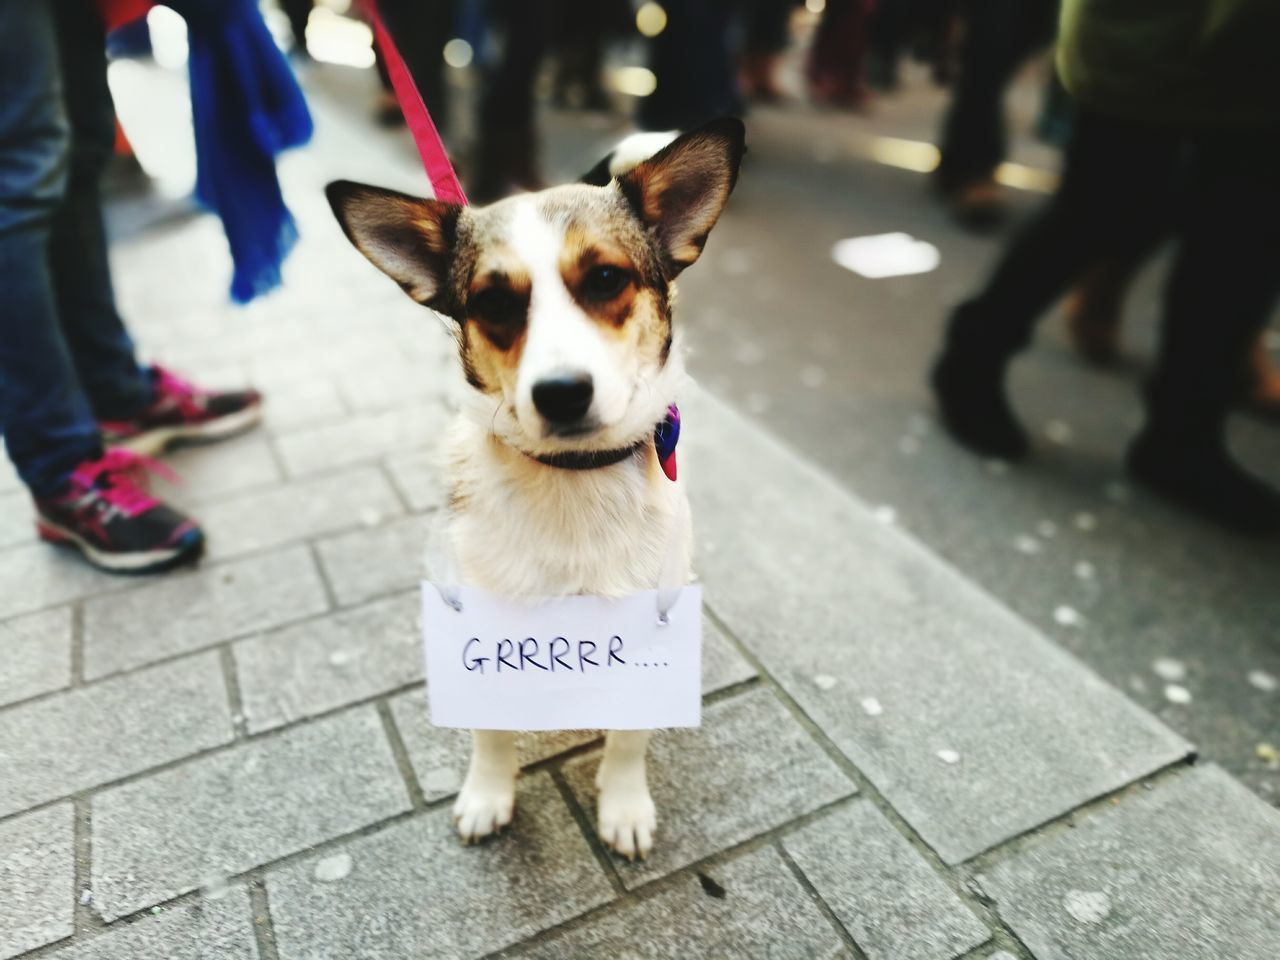 Dogs Animal Pets Womensmarch Womens March London Womensmarchonwashington No People One Animal Dog Looking At Camera Portrait City Outdoors Animal Themes Close-up Day